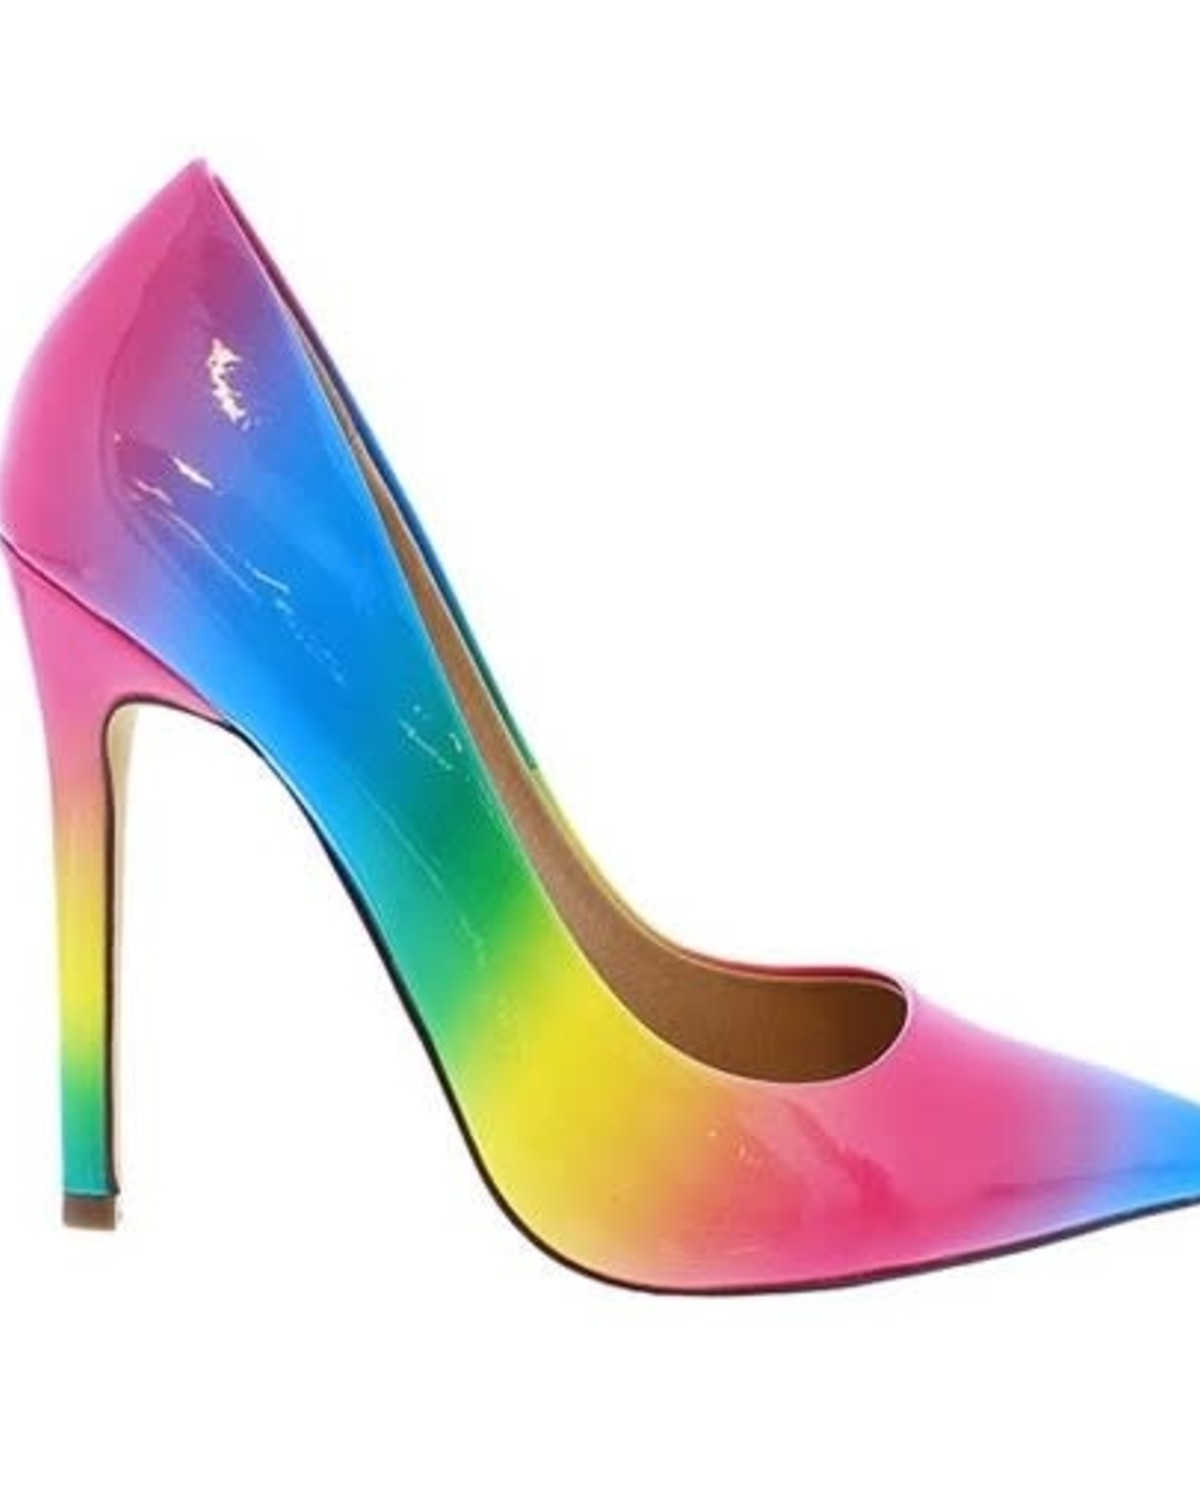 Dream On Rainbow Pumps